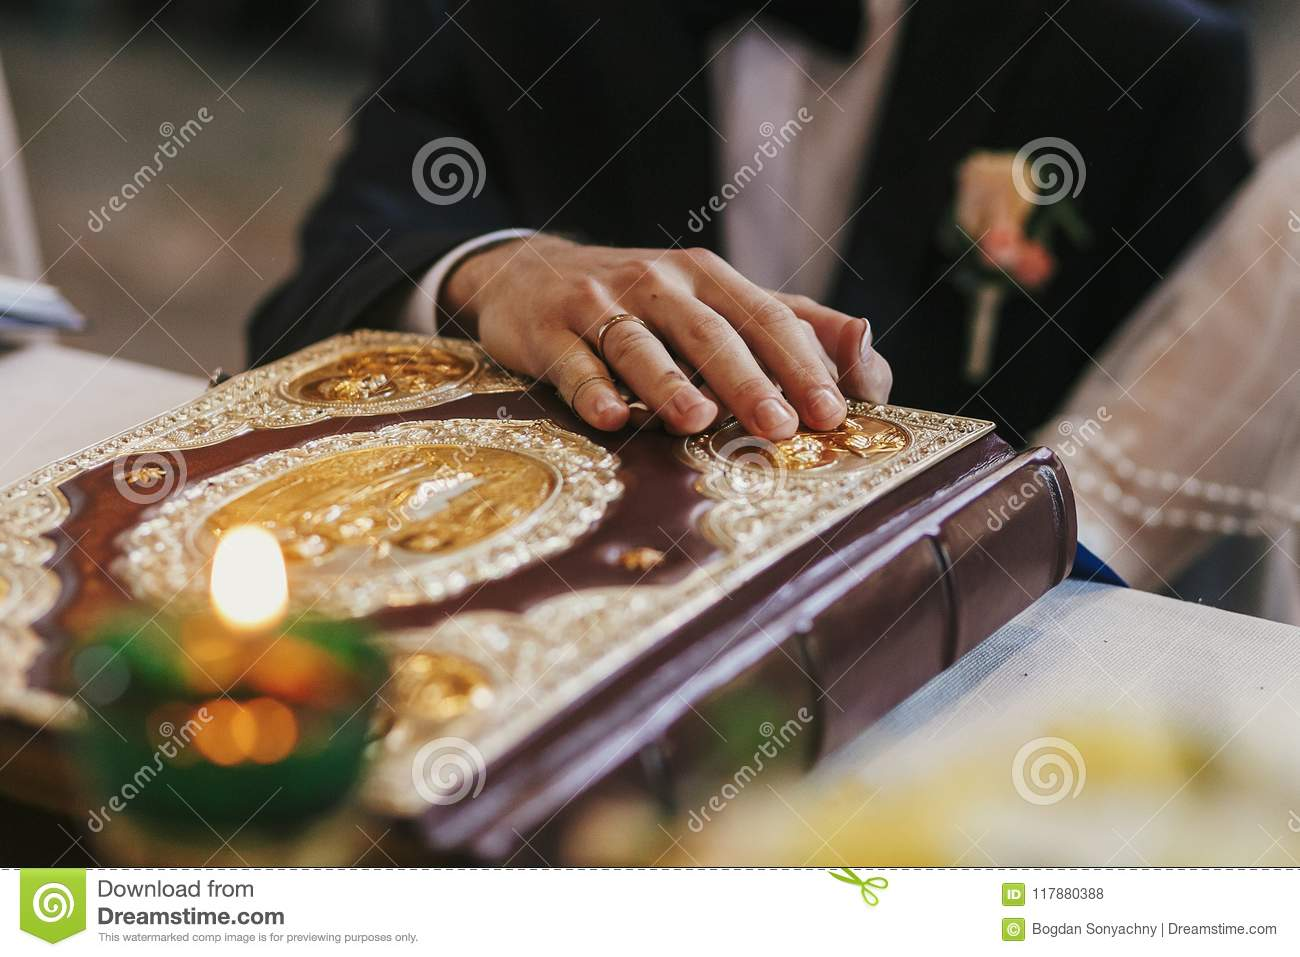 bride and groom holding hands on golden bible on holy altar during wedding ceremony in church, exchanging oaths. spiritual moment